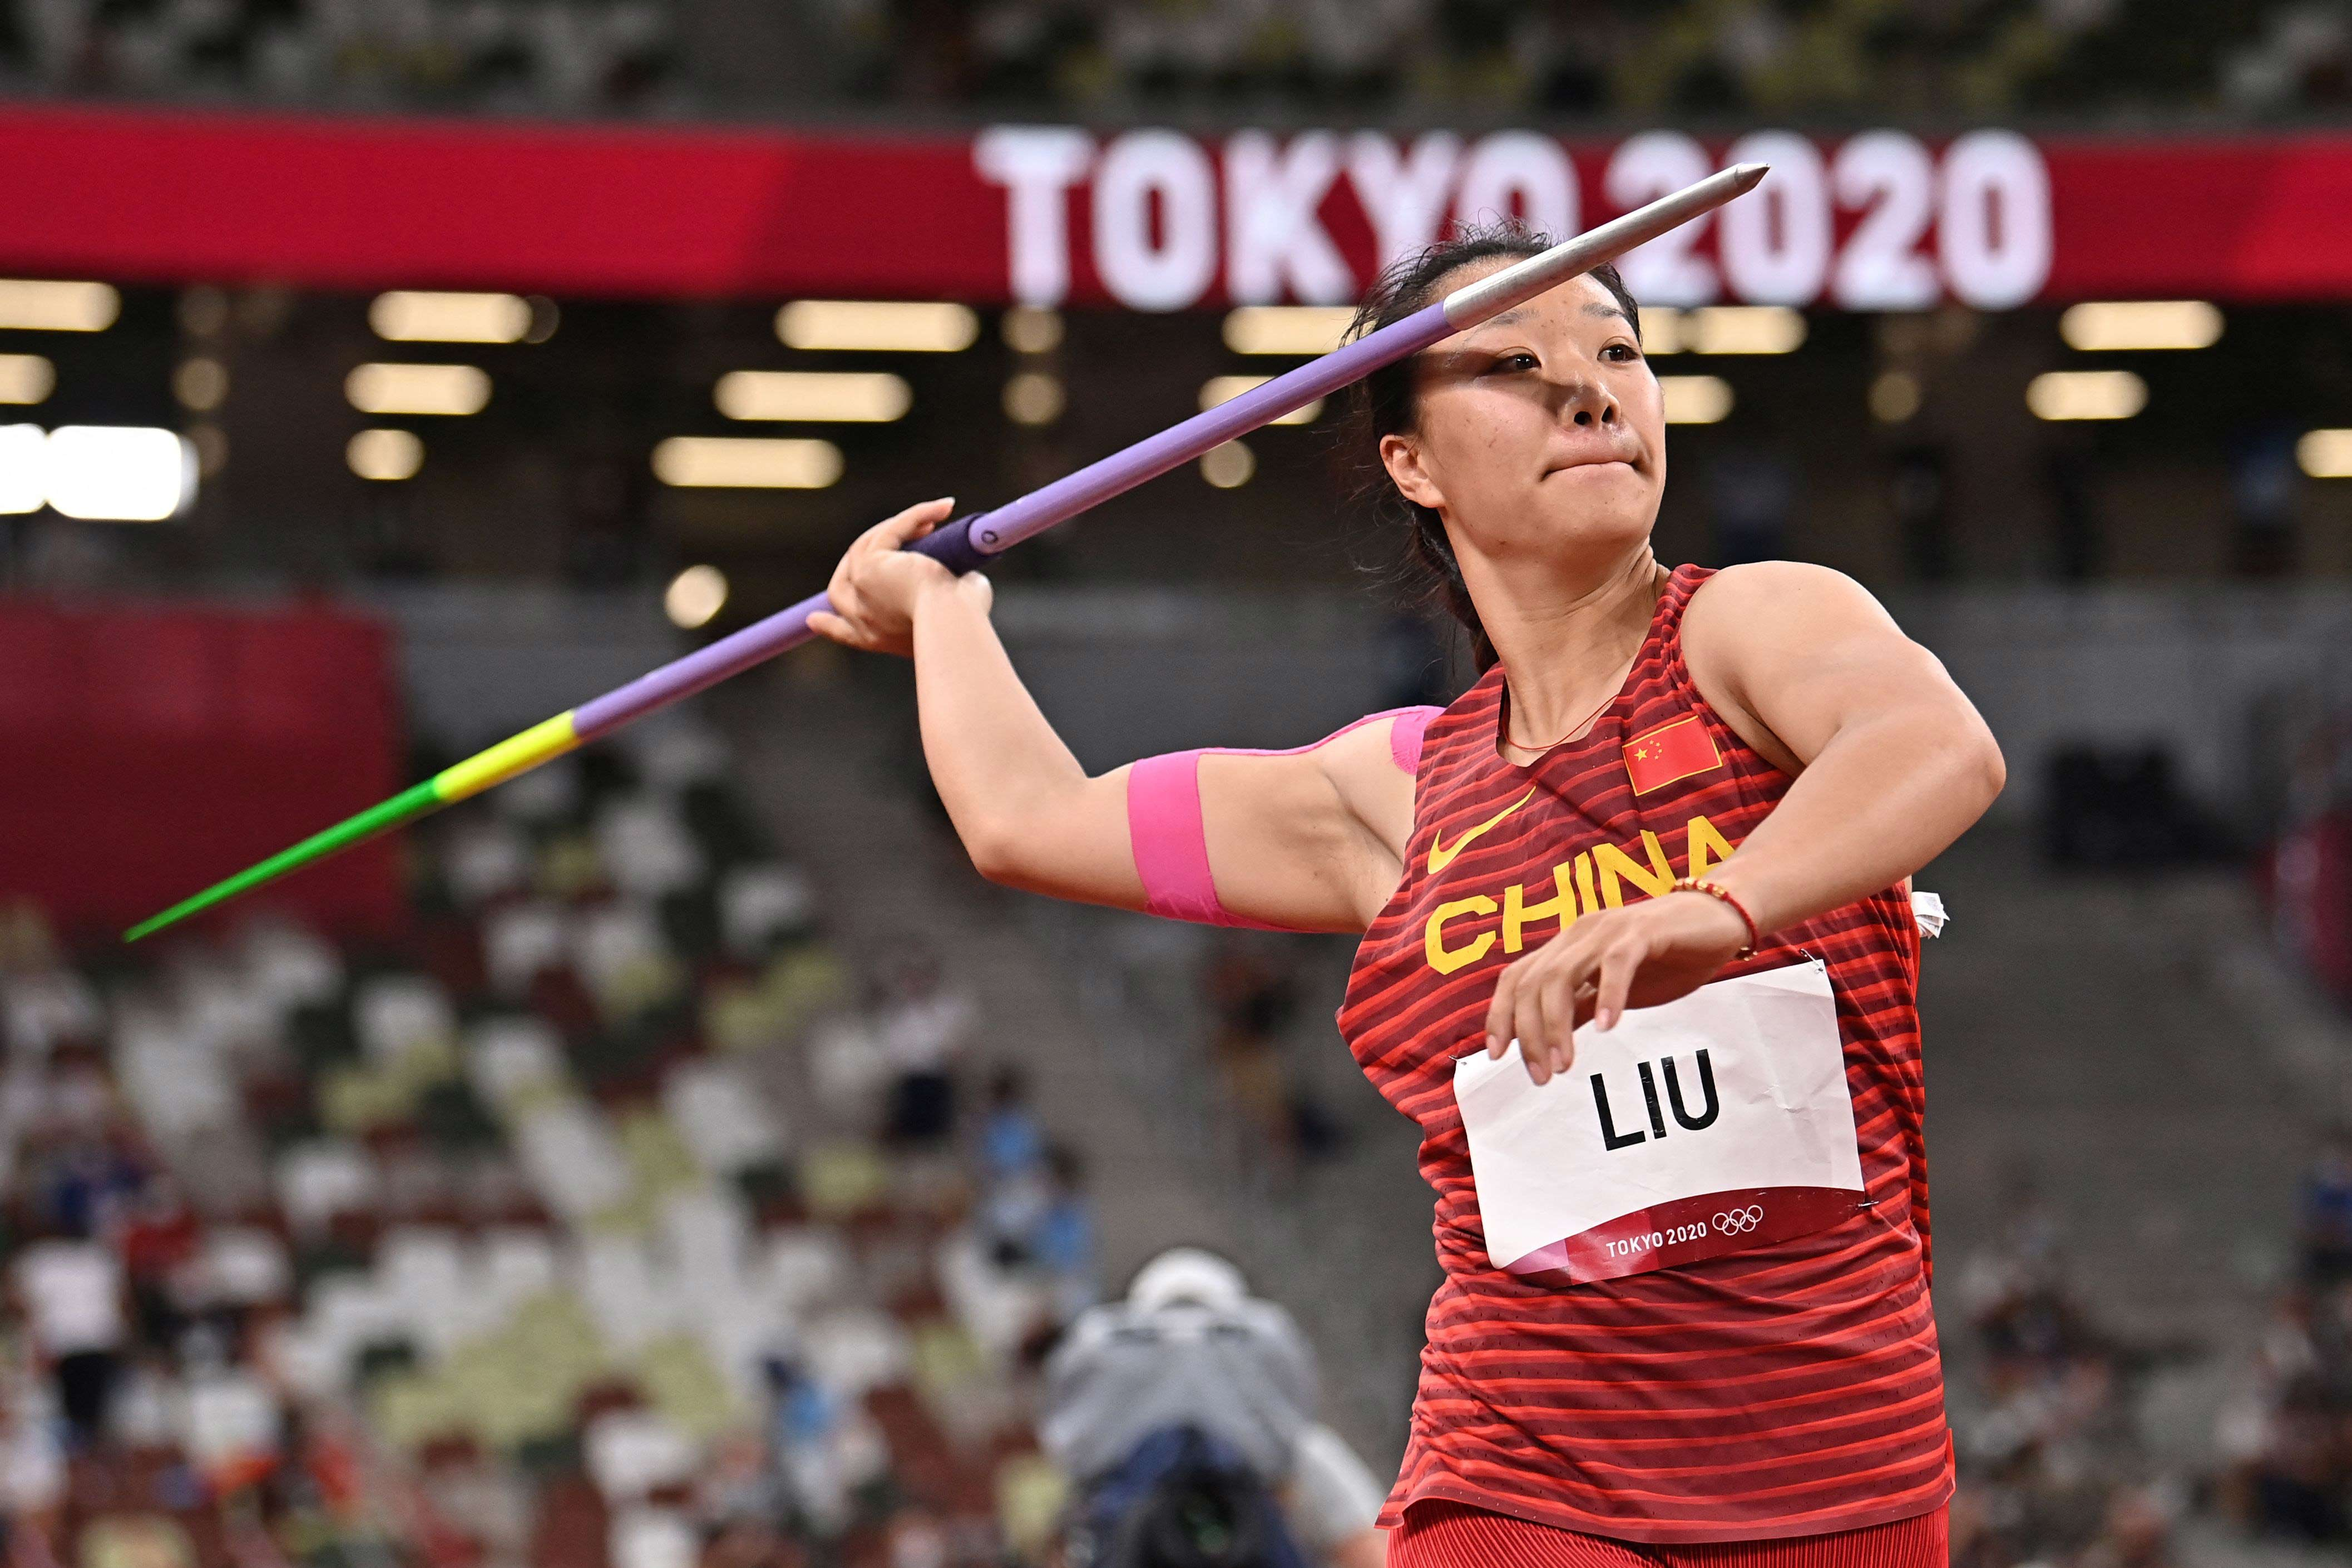 China's Liu Shiying competes in the javelin throw final on August 6.